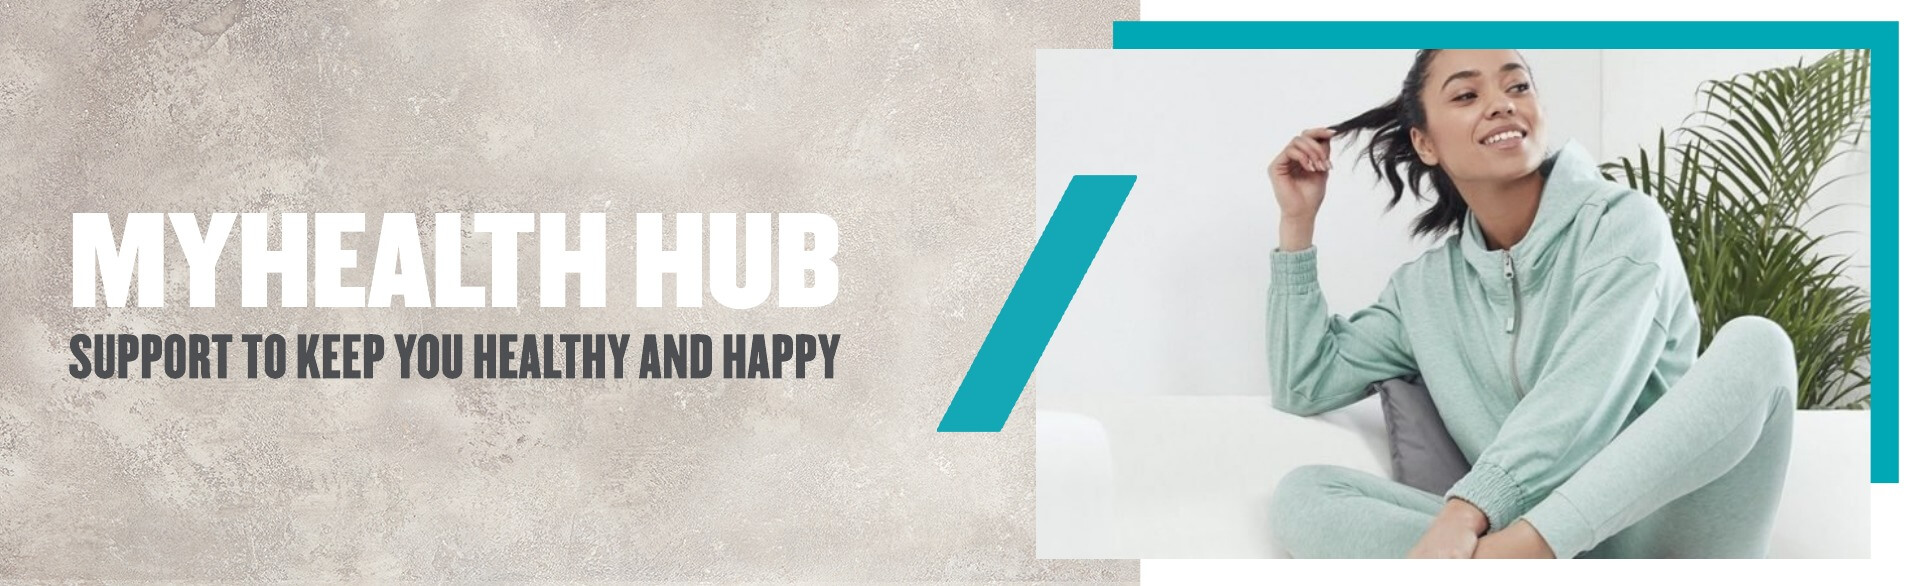 My Health Hub - Support to keep you healthy and happy, check it out now